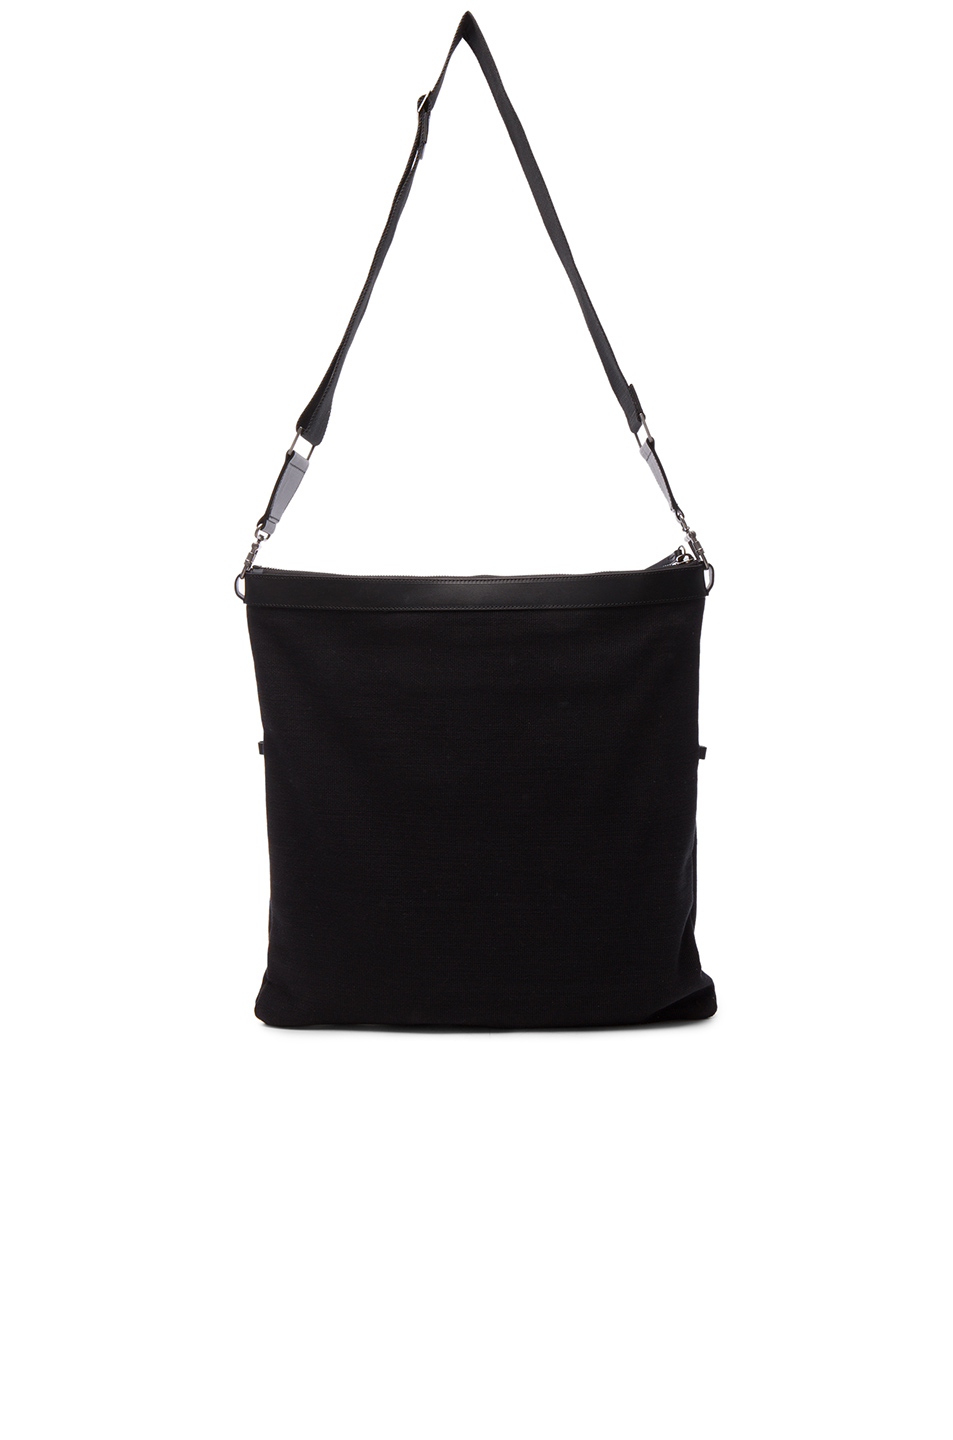 Maison Margiela Canvas Tote in Black